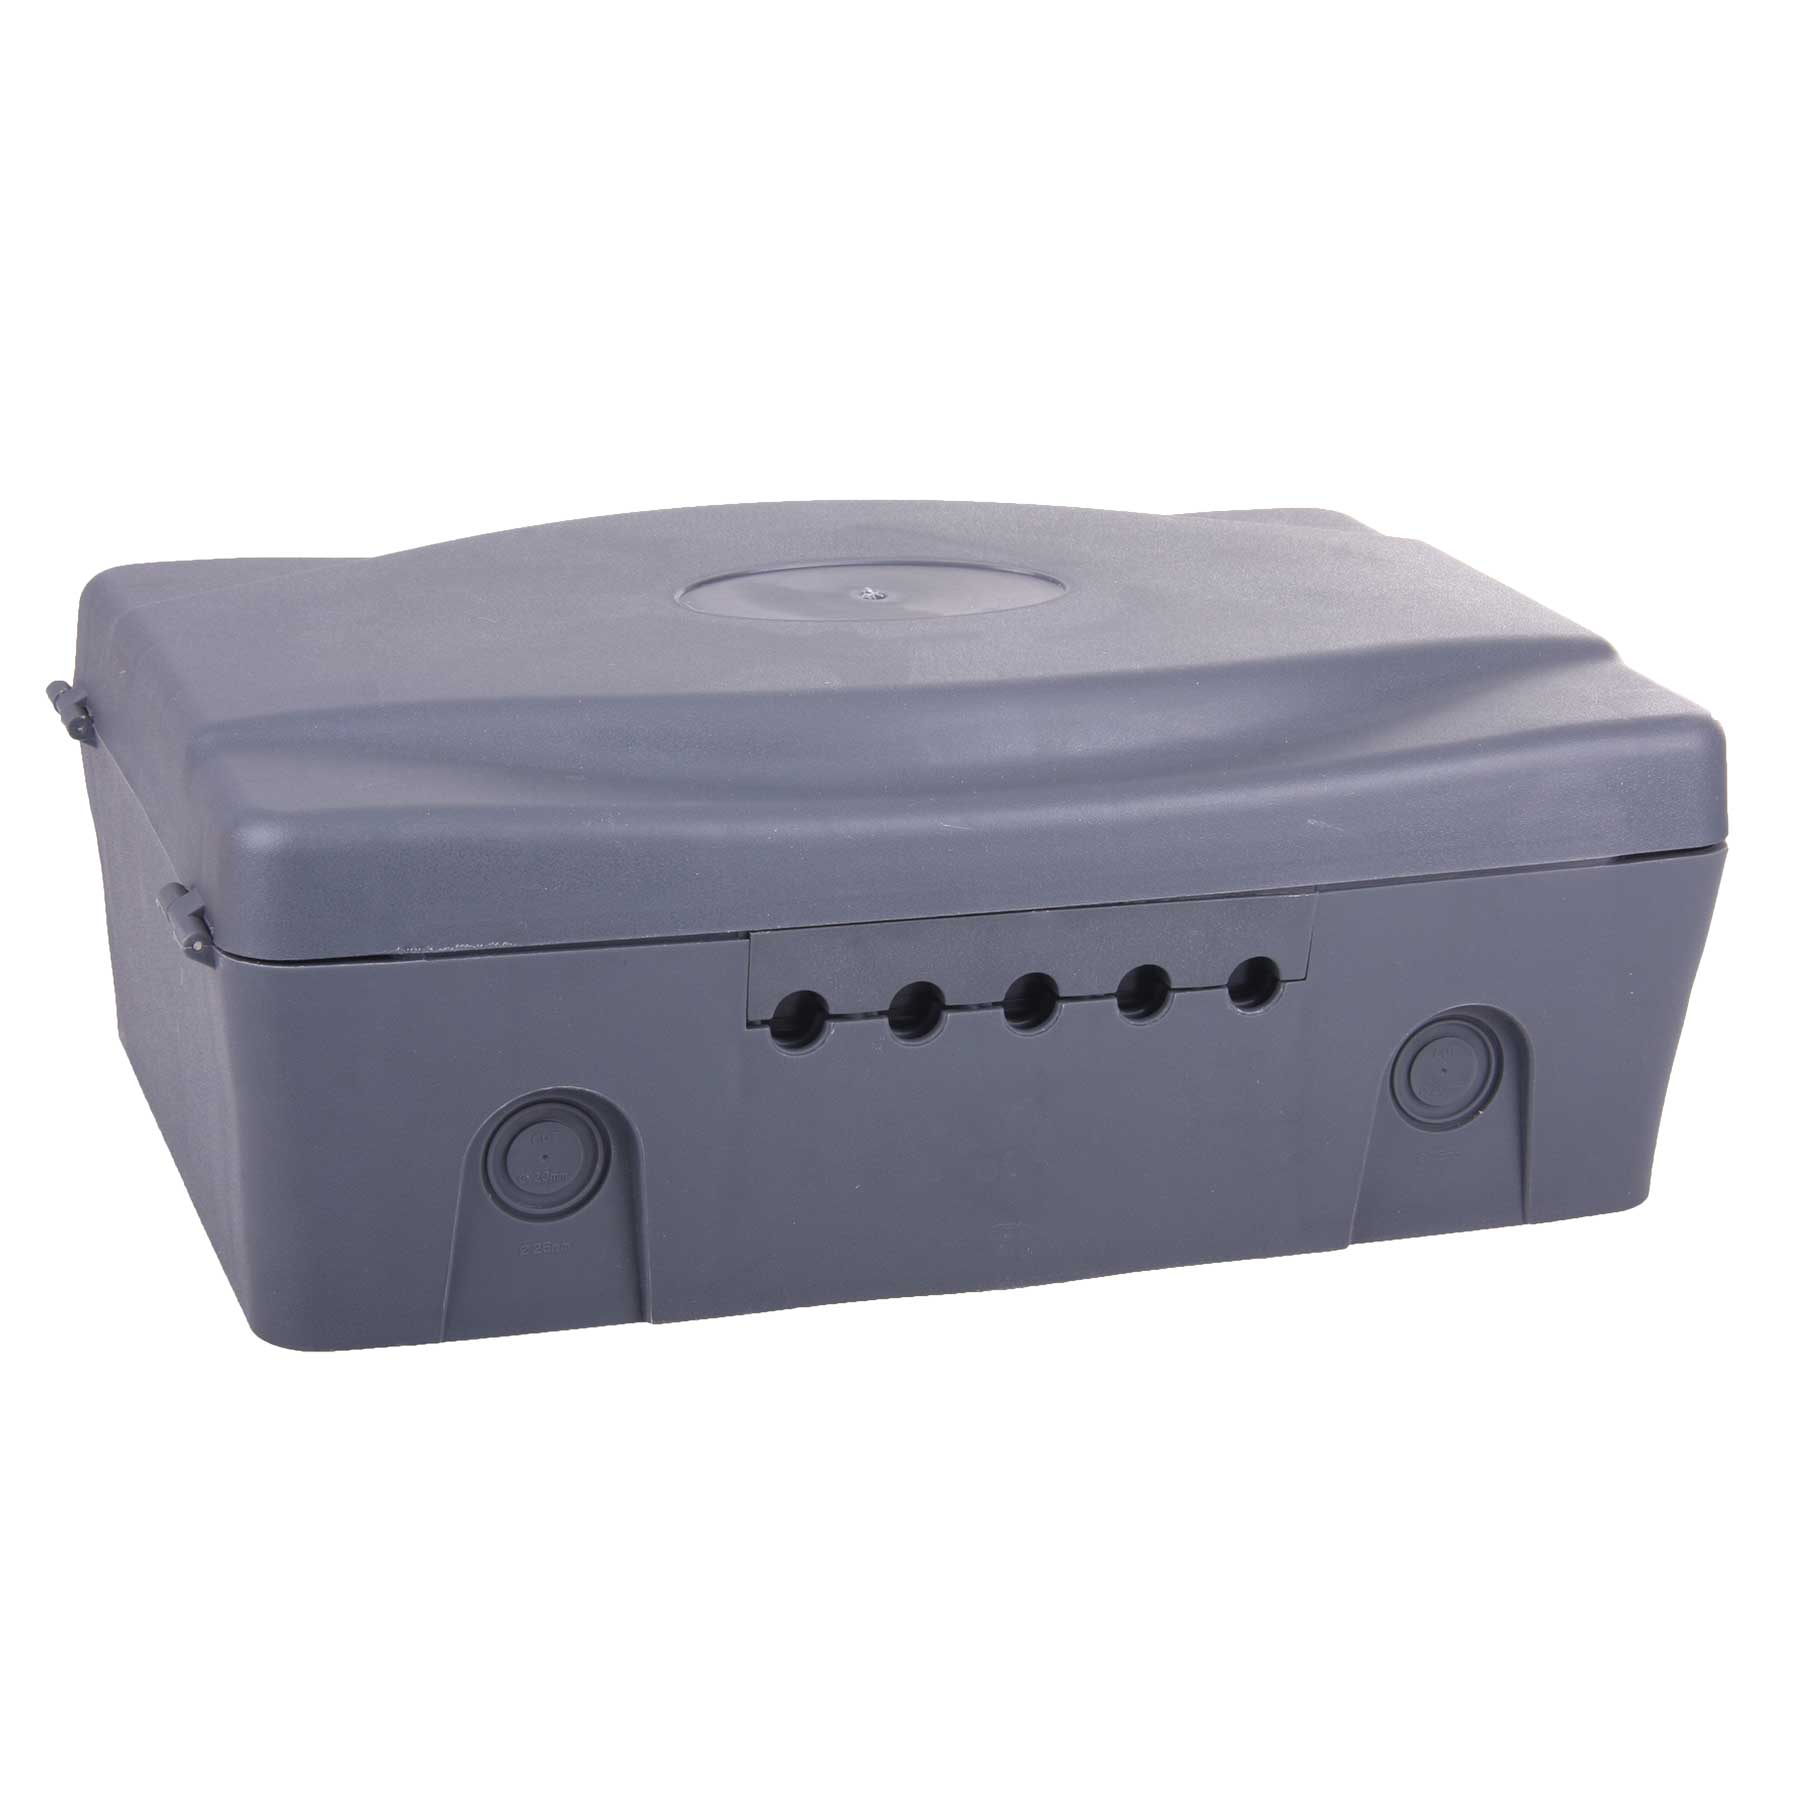 4 4 Weatherproof Electrical Box: Masterplug Weatherproof Box For Outdoor Electrical Power